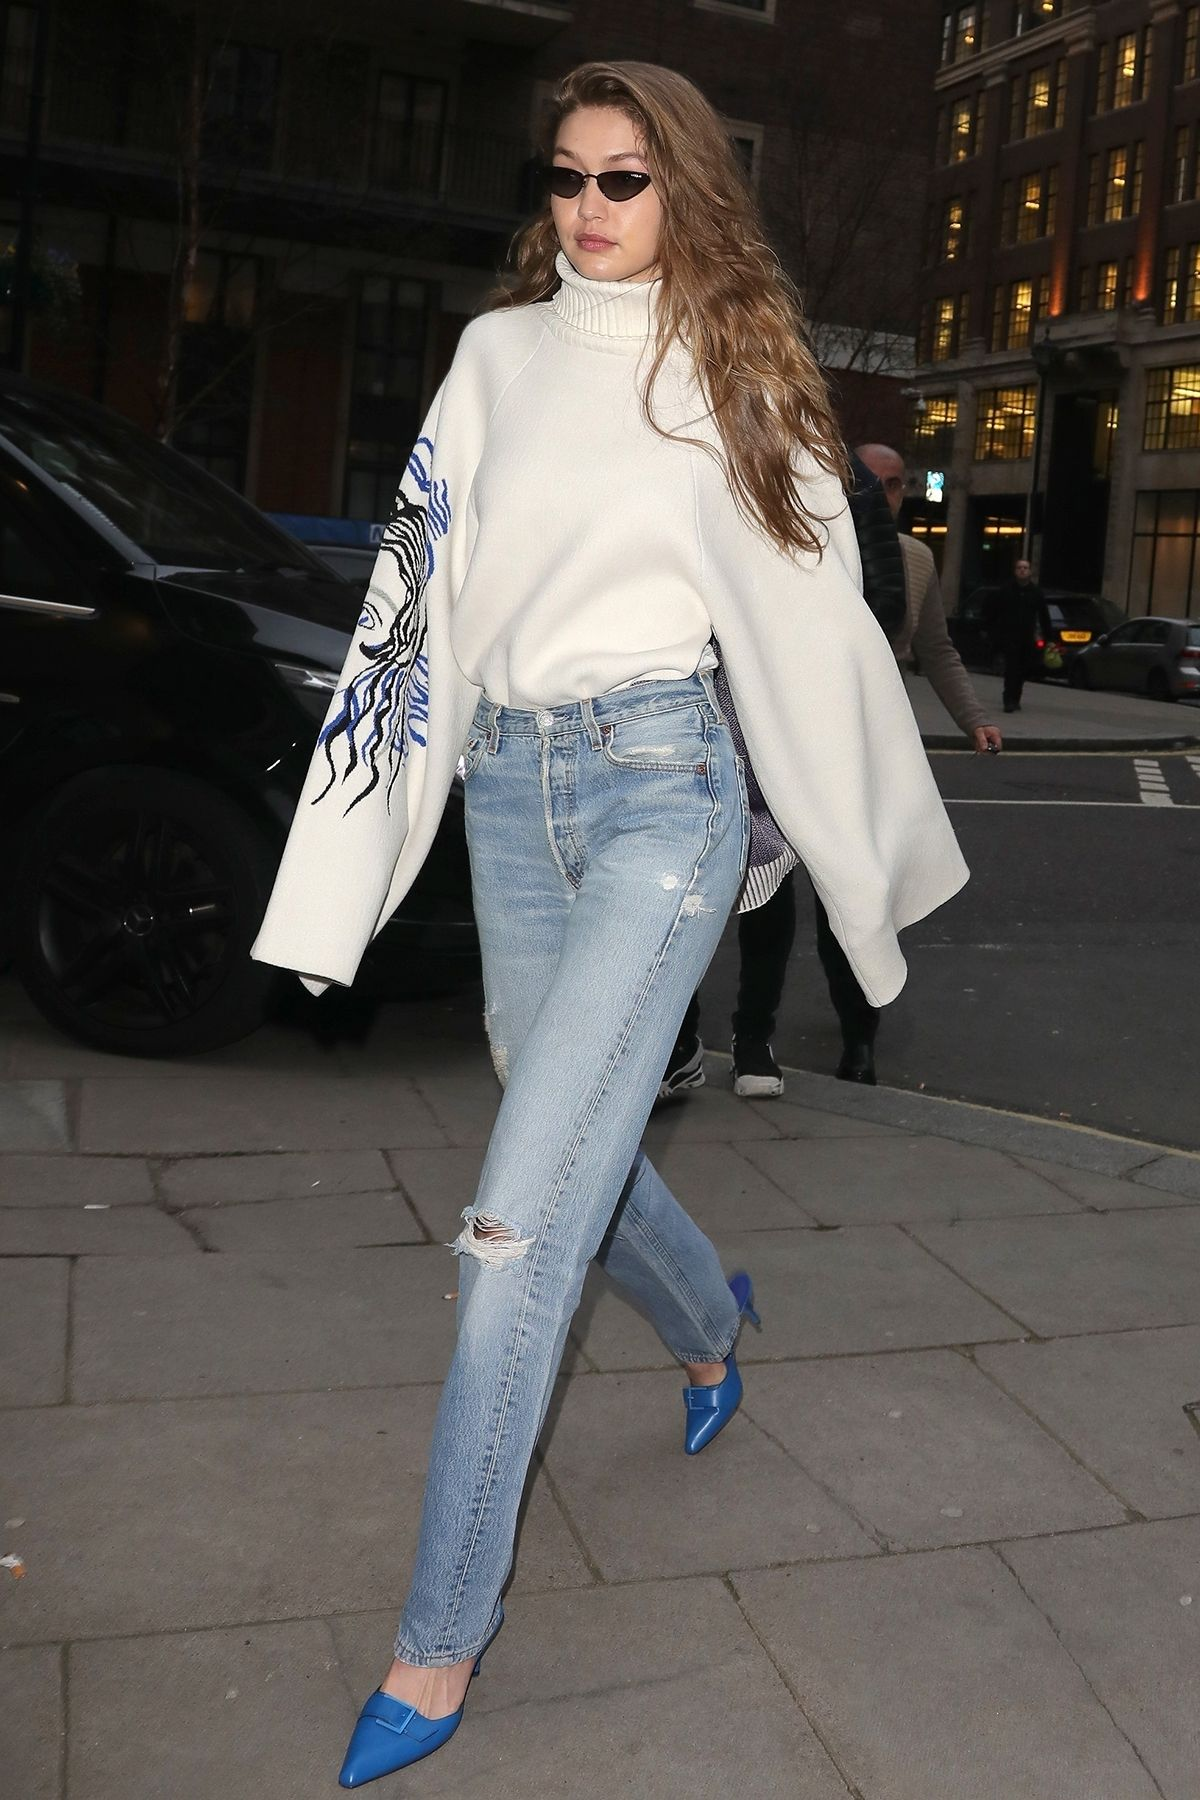 d5326a52761 Gigi Hadid Found the Perfect $49 Heels to Wear With Jeans | WhoWhatWear.com  | Bloglovin'